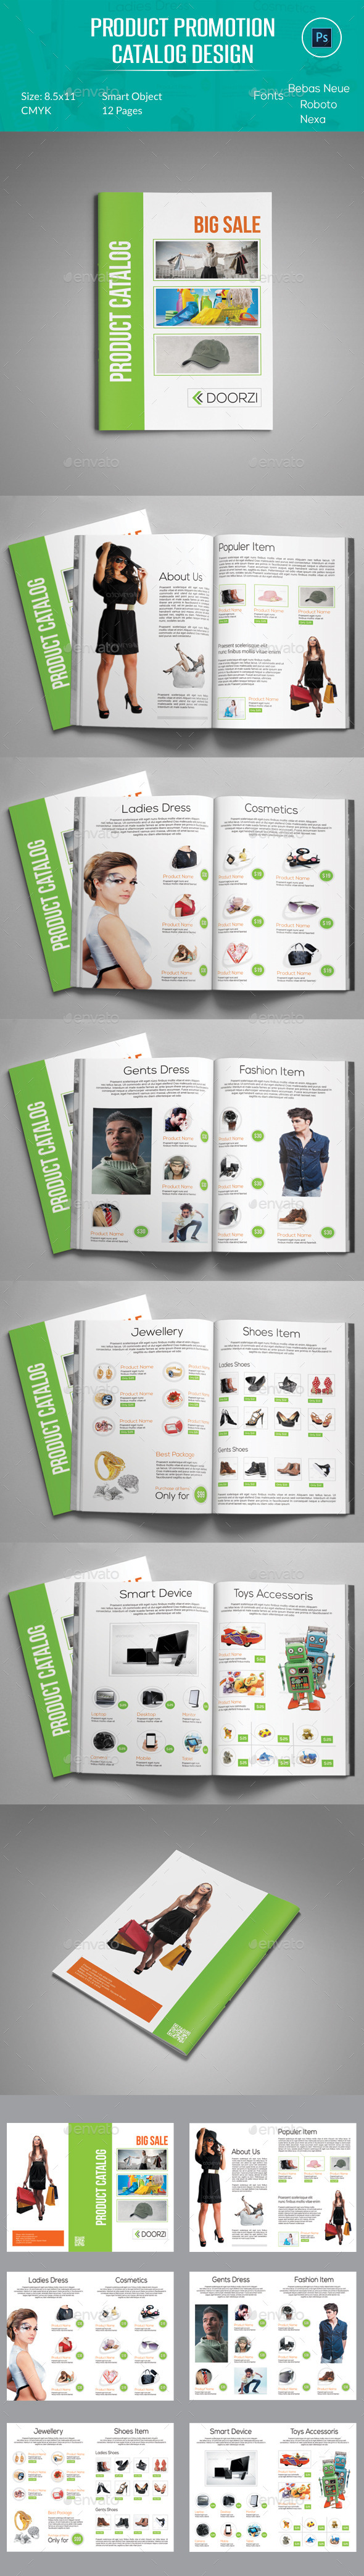 Product Promotion Catalog